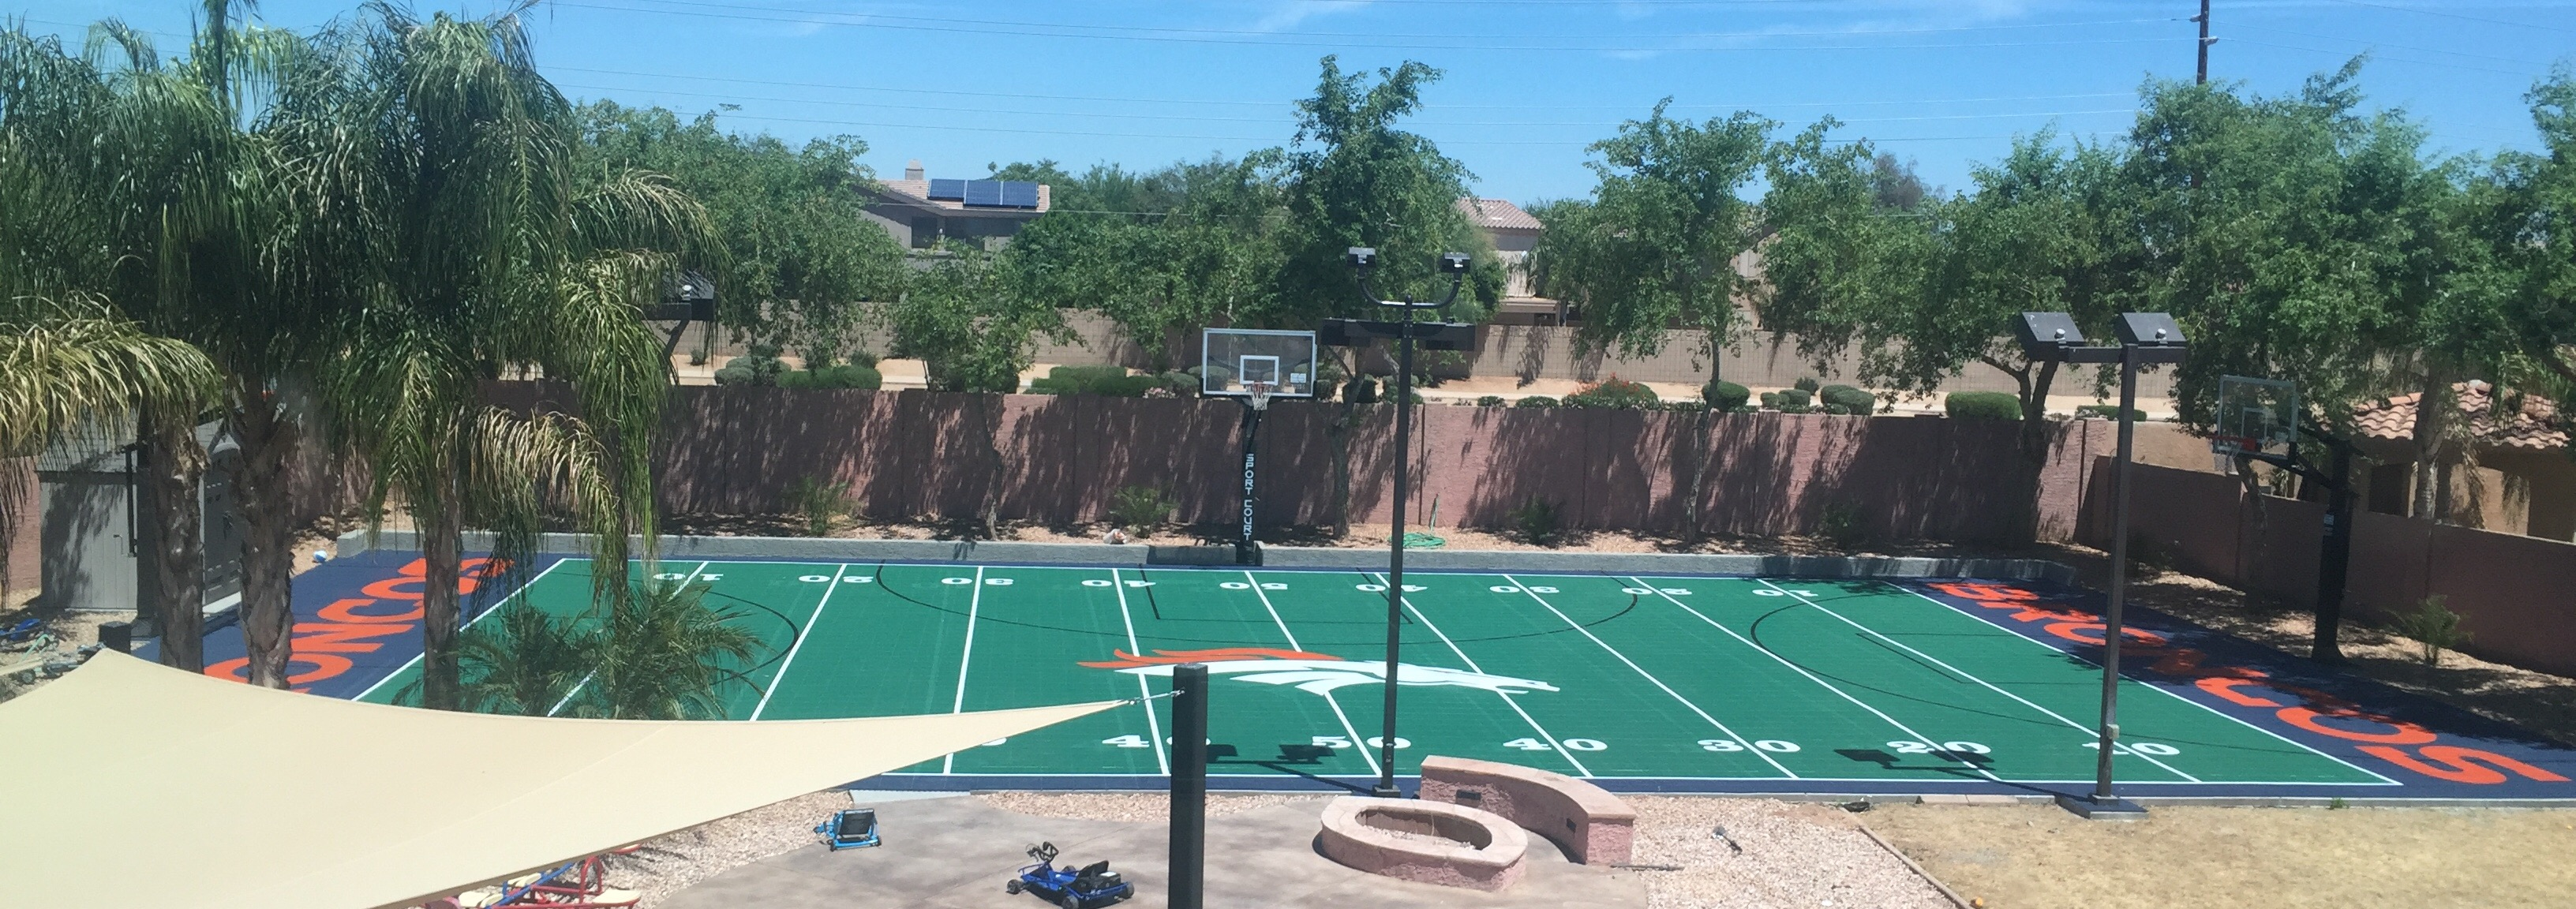 Custom Designed Backyard Basketball Court from Sport Court